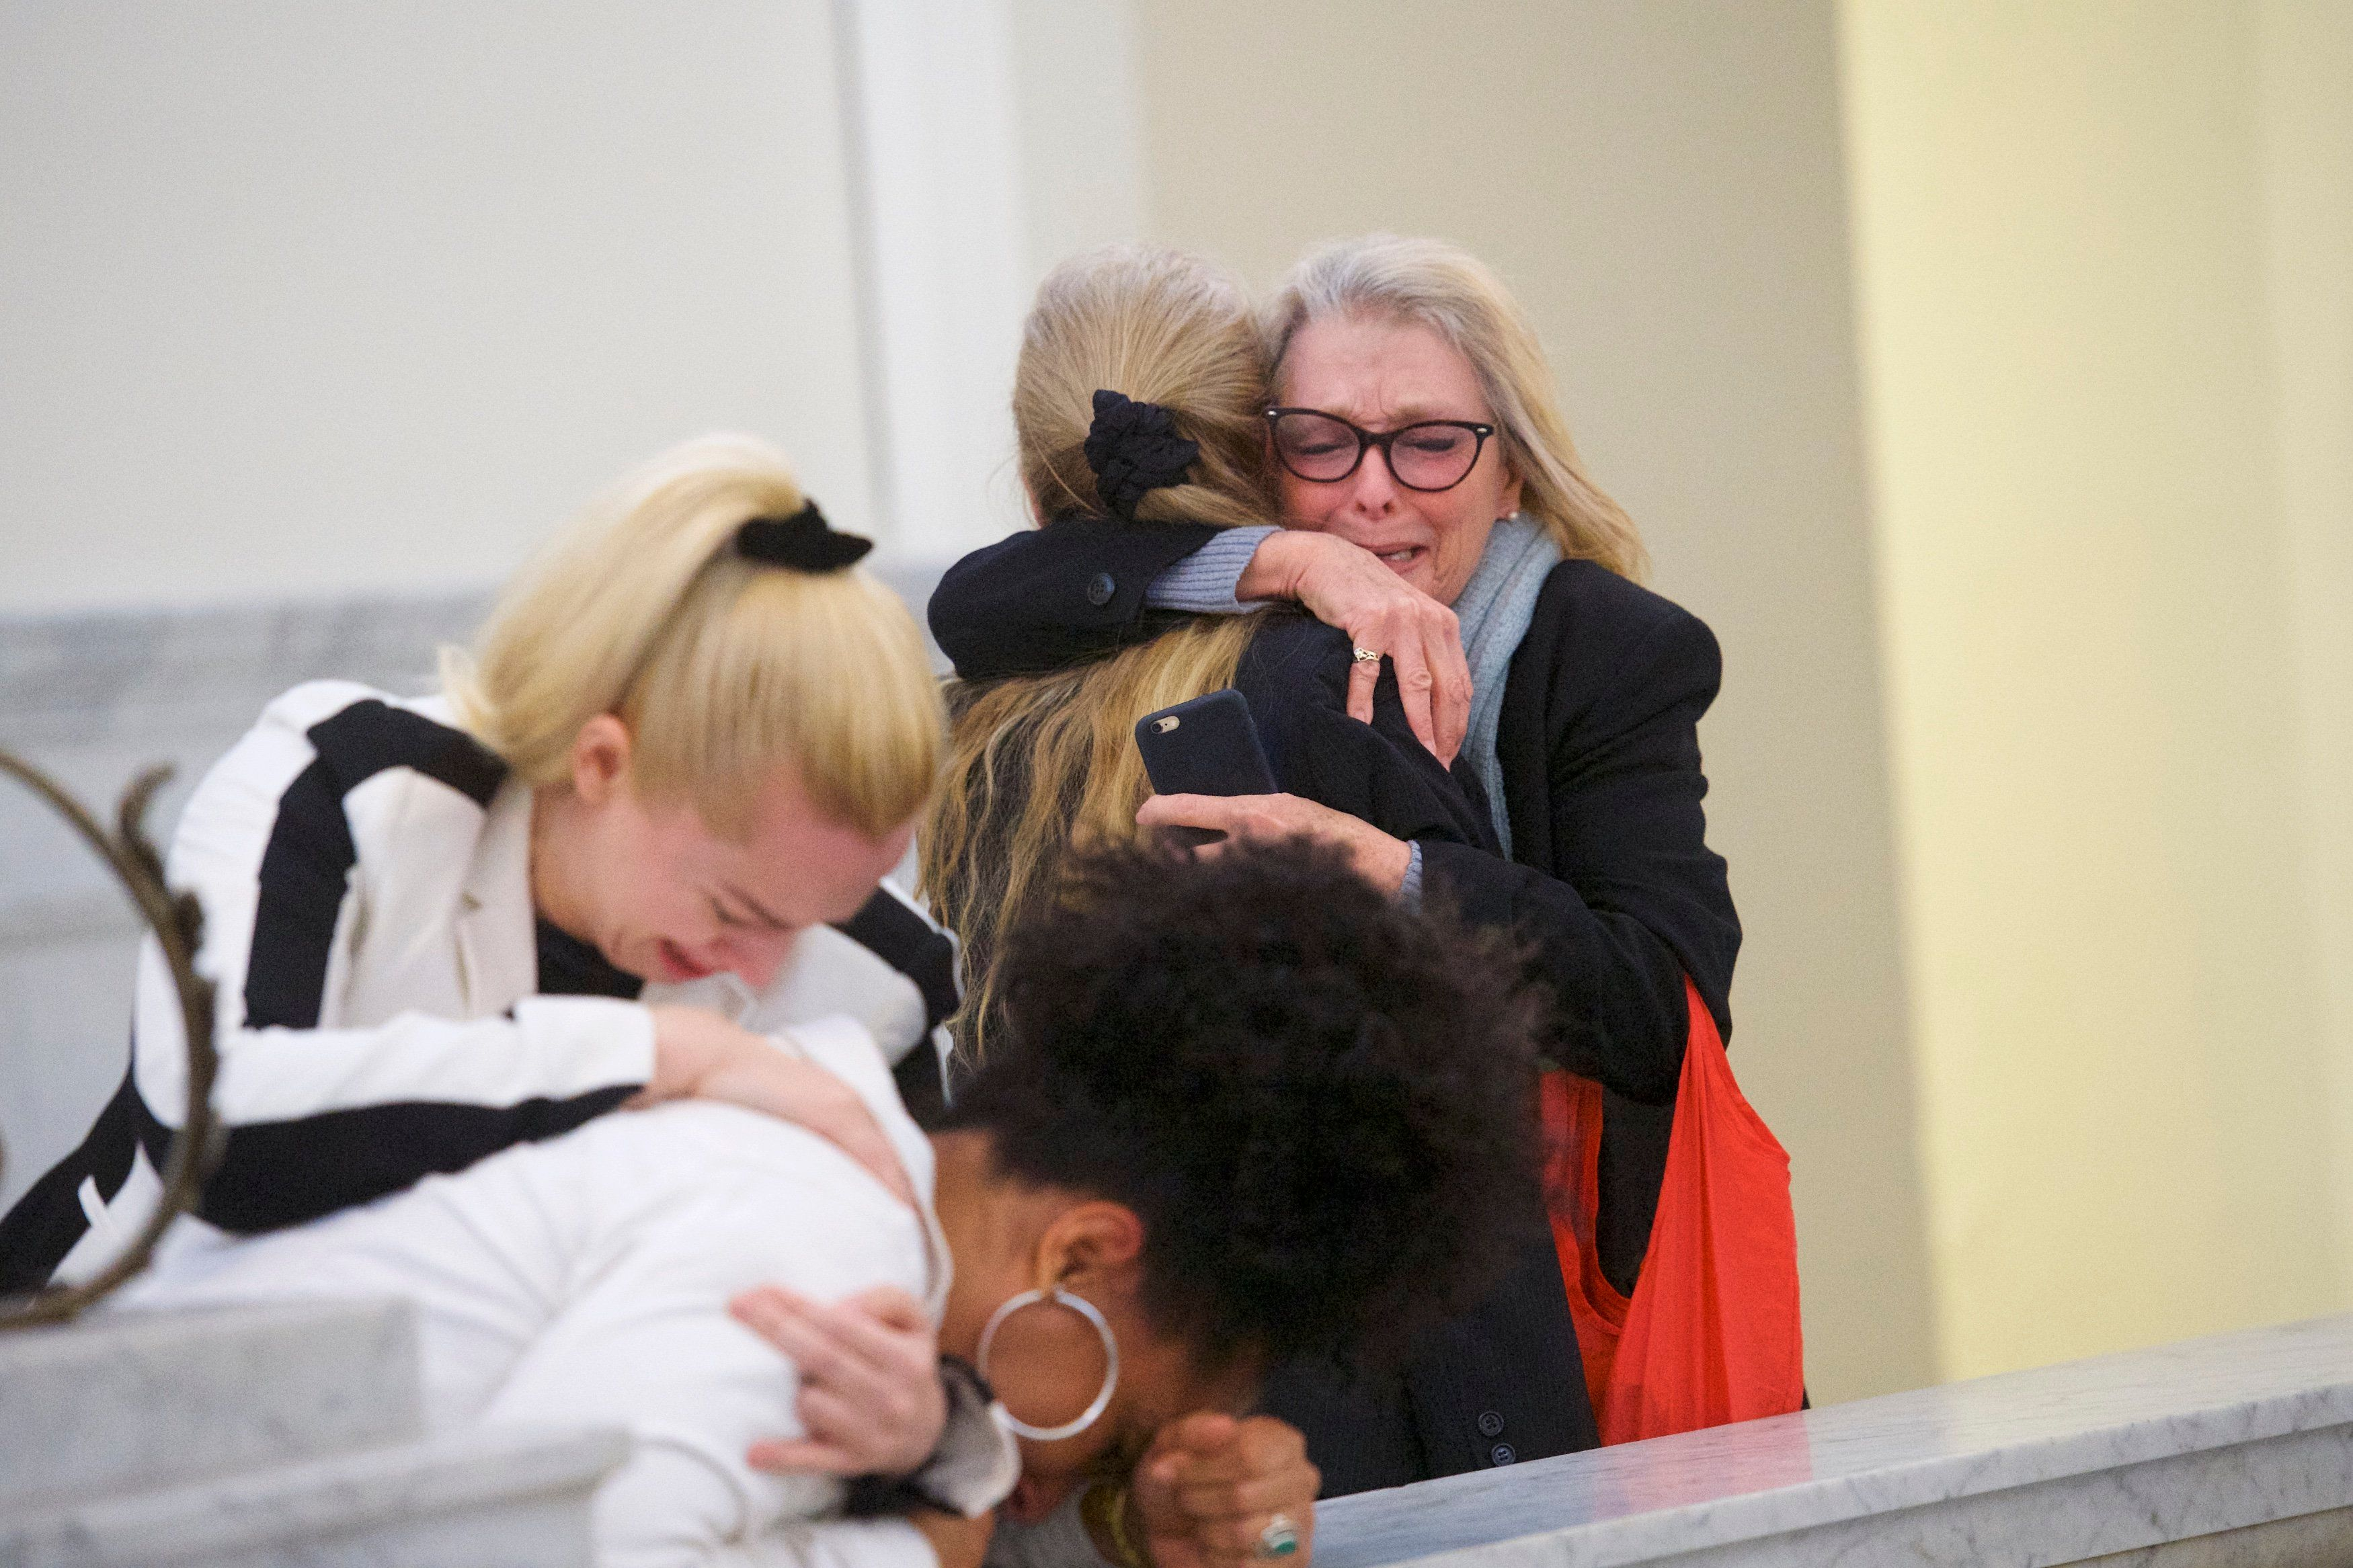 NORRISTOWN, PA - APRIL 26:  Bill Cosby accusers Victoria Valentino (R), Caroline Heldman (L) and Lili Bernard (2L) react after the guilty on all counts verdict was delivered in the sexual assault retrial at the Montgomery County Courthouse on April 26, 2018 in Norristown, Pennsylvania.  Cosby was found guilty on all accounts after a former Temple University employee alleges that the entertainer drugged and molested her in 2004 at his home in suburban Philadelphia.  More than 40 women have accused the 80 year old entertainer of sexual assault.  (Photo by Mark Makela/Getty Images)